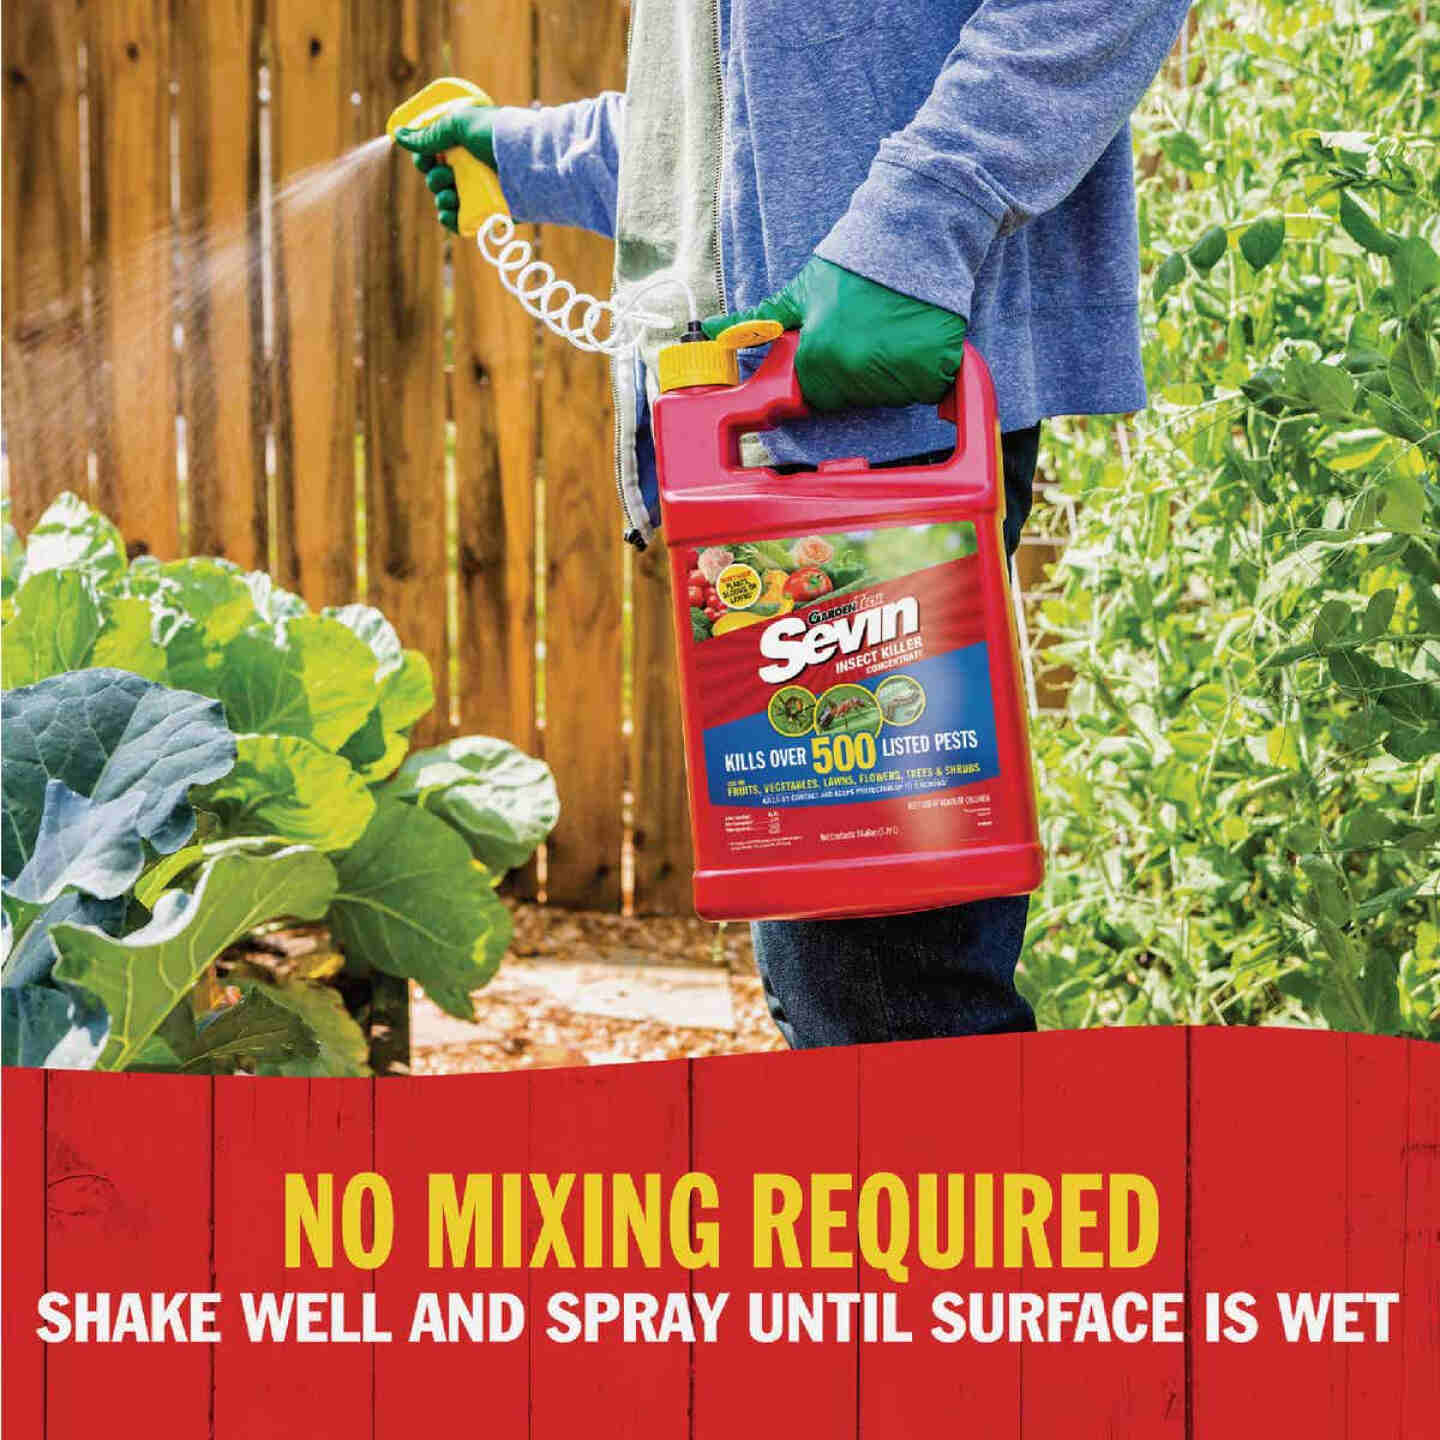 Garden Tech Sevin 1 Gal. Ready To Use Trigger Spray Insect Killer Image 2